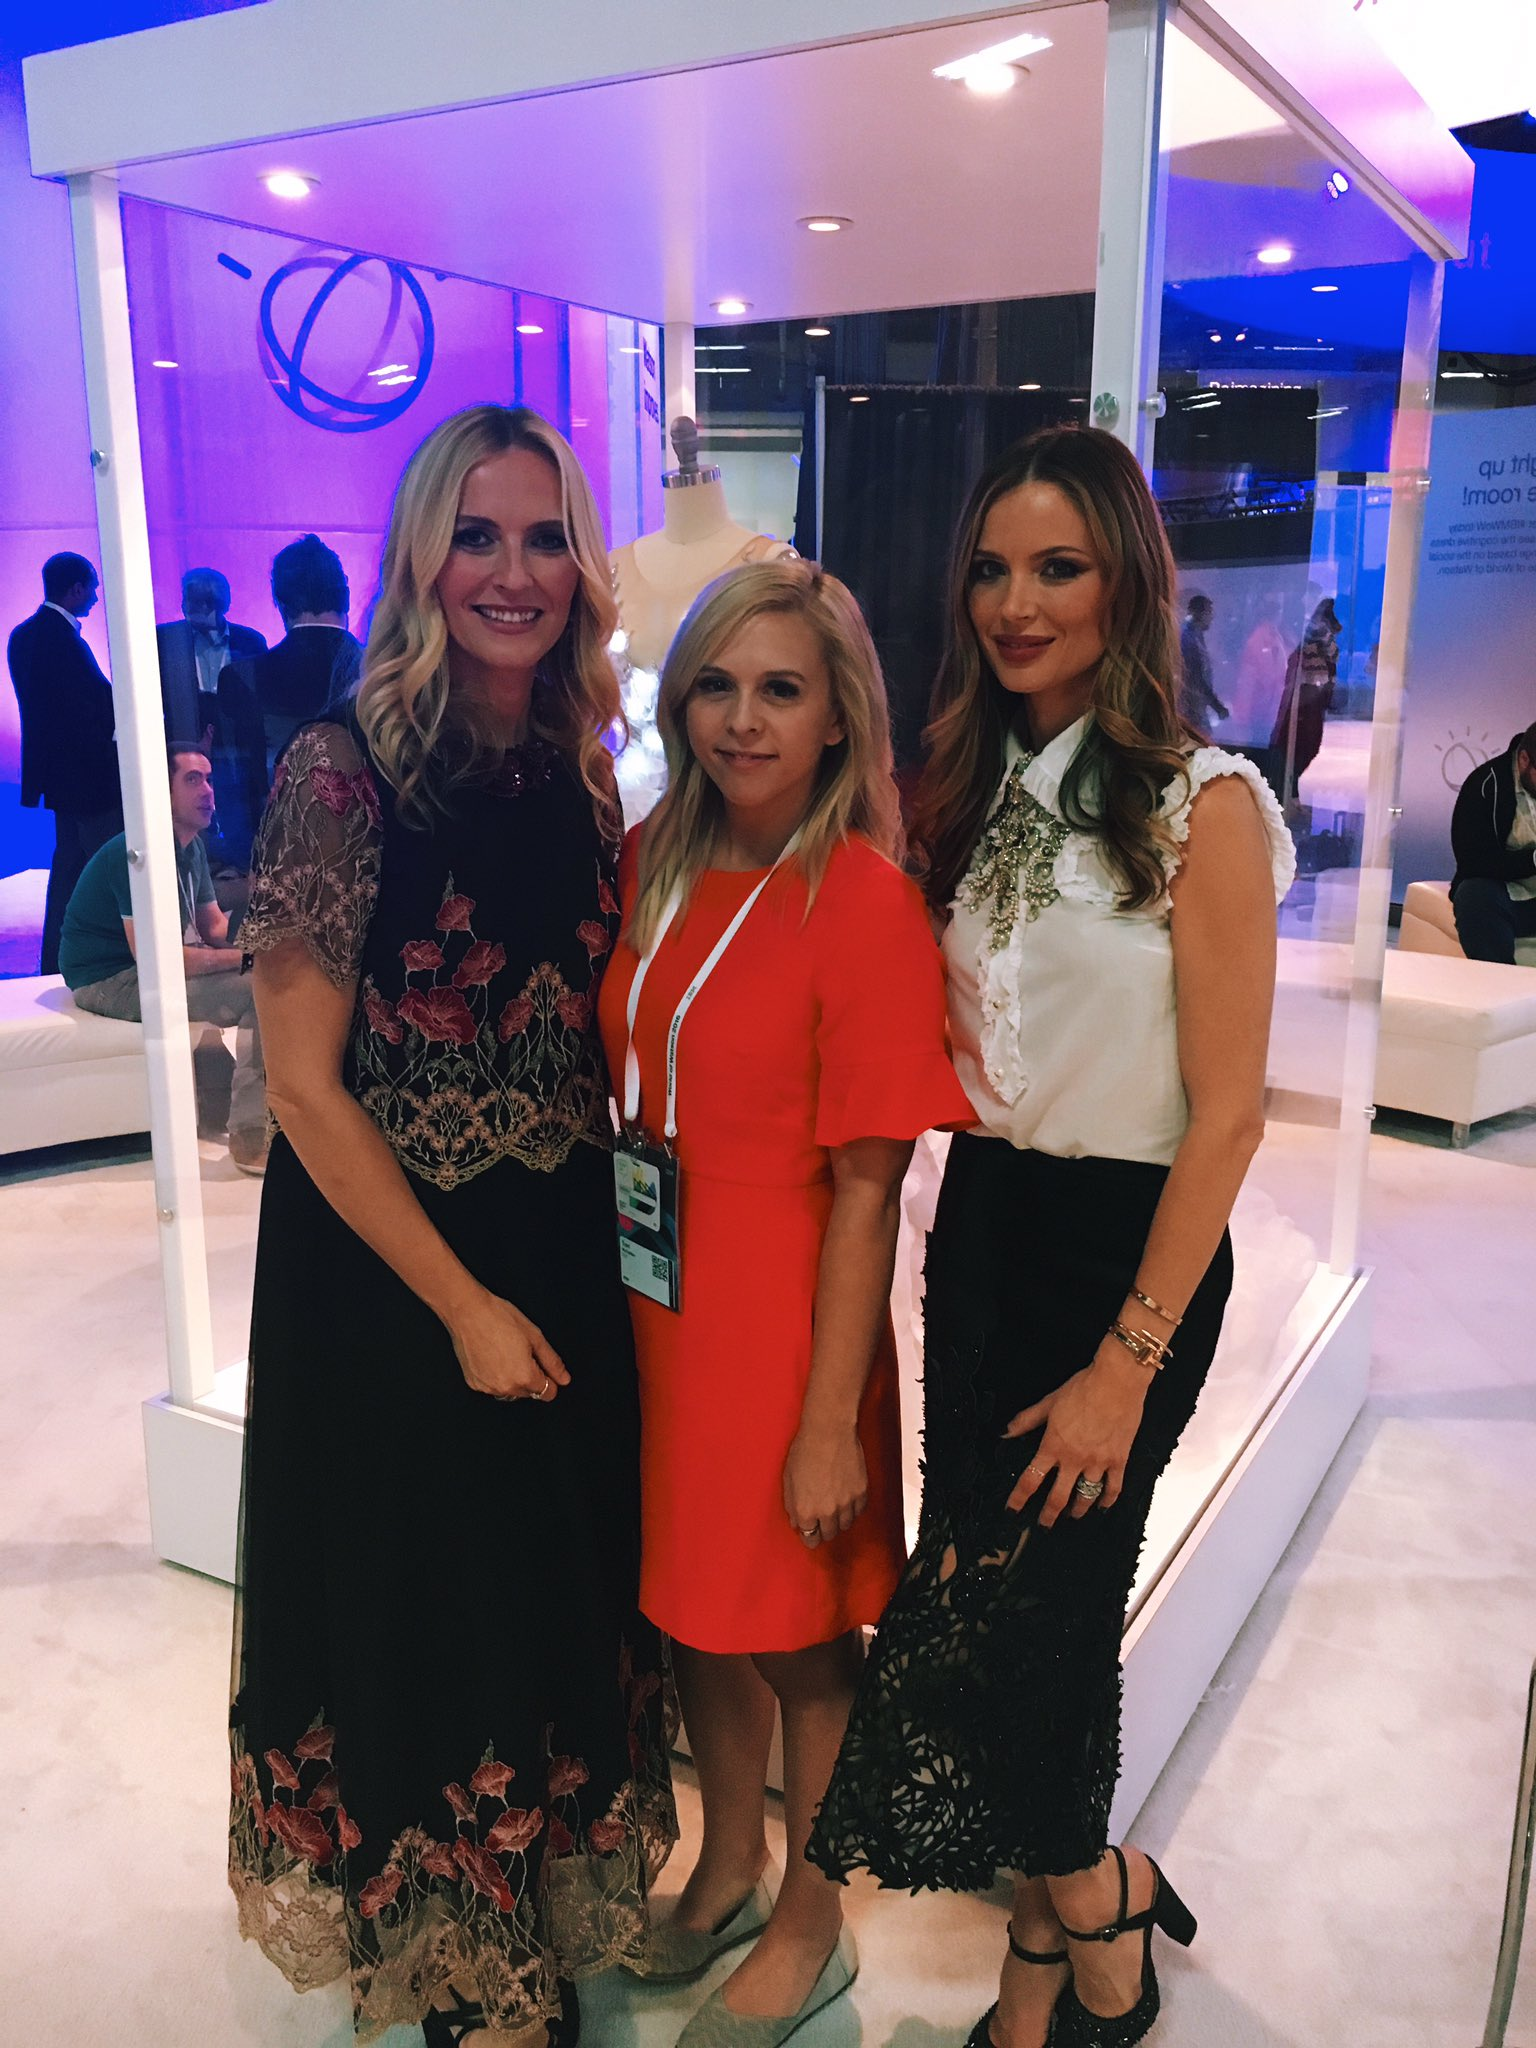 My favorite designers and the coolest technology wrapped up into one day? #heaven #ibmwow https://t.co/fTTrJyyUmH